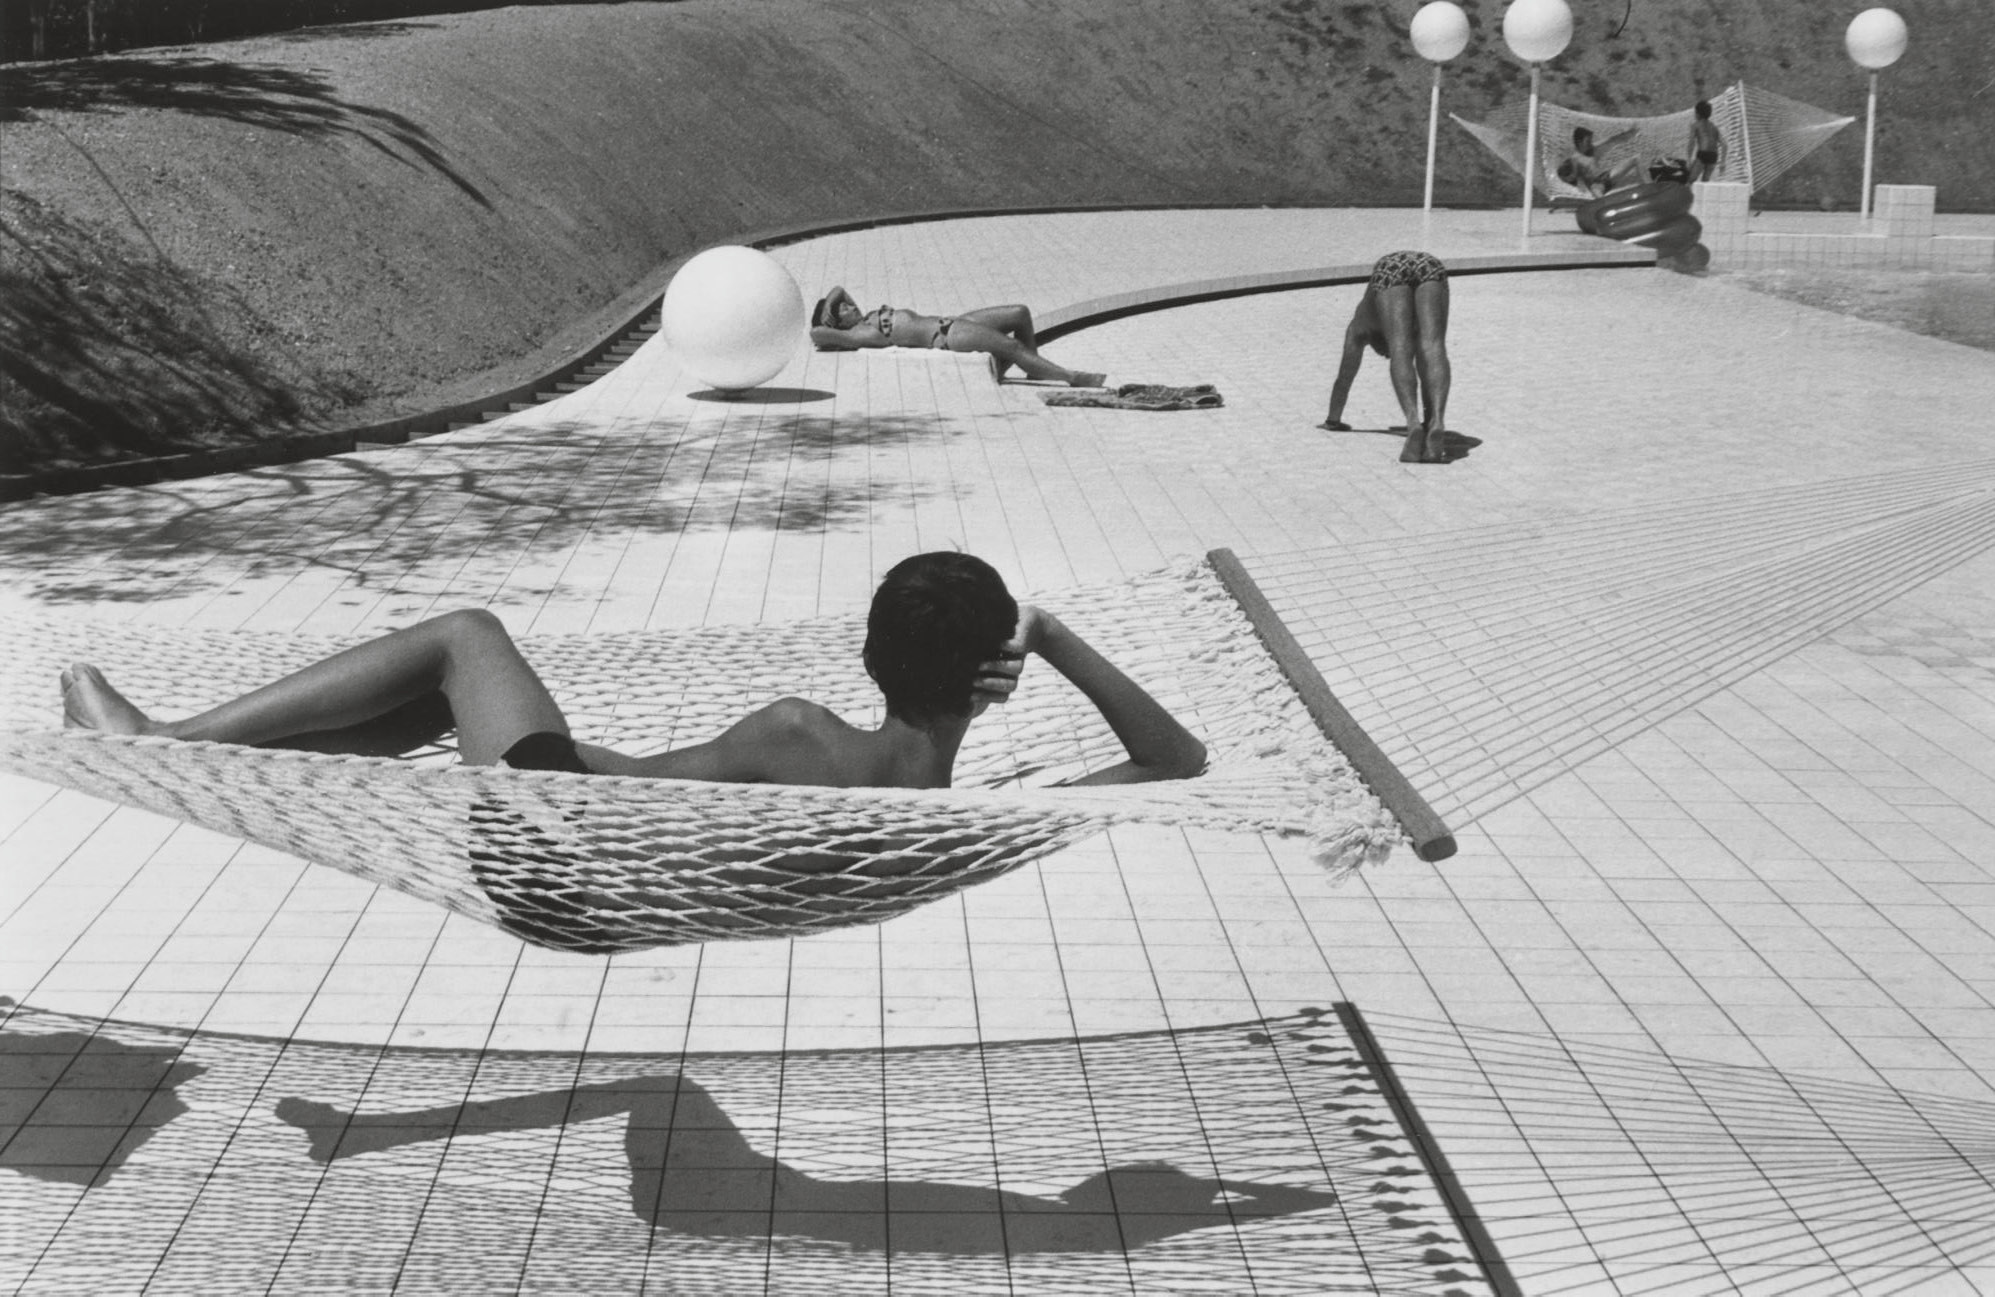 Le Brusc, South of France, 1976